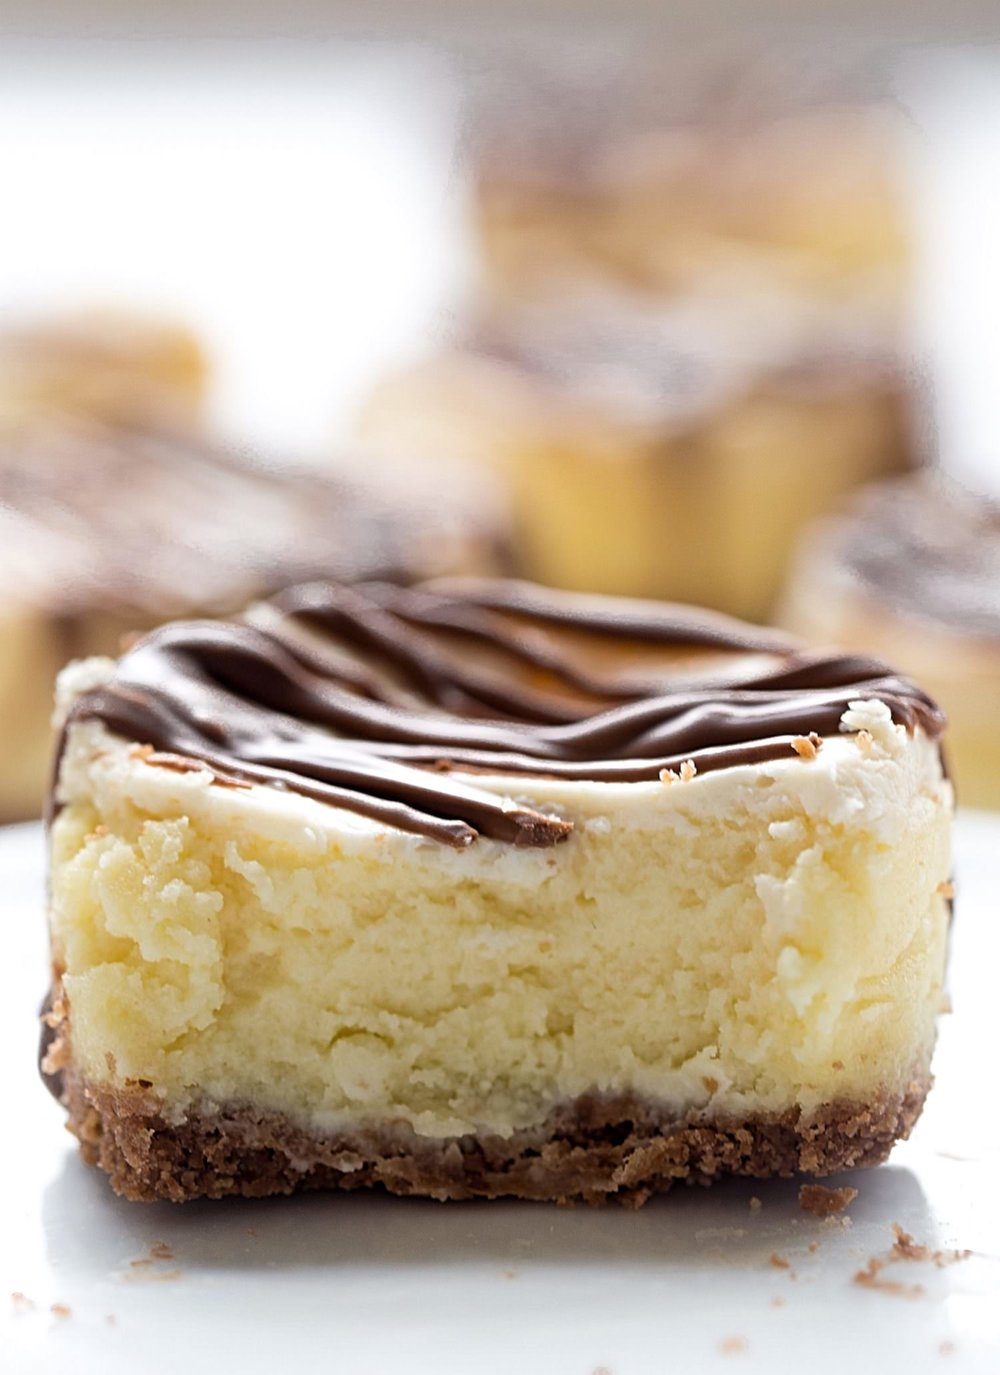 Mini Milk Chocolate Topped Cheesecakes: these personal cheesecakes have a cookie crust, a creamy, sweet and slightly tangy cheesecake filling, and a drizzle of milk chocolate on top. | TrufflesandTrends.com